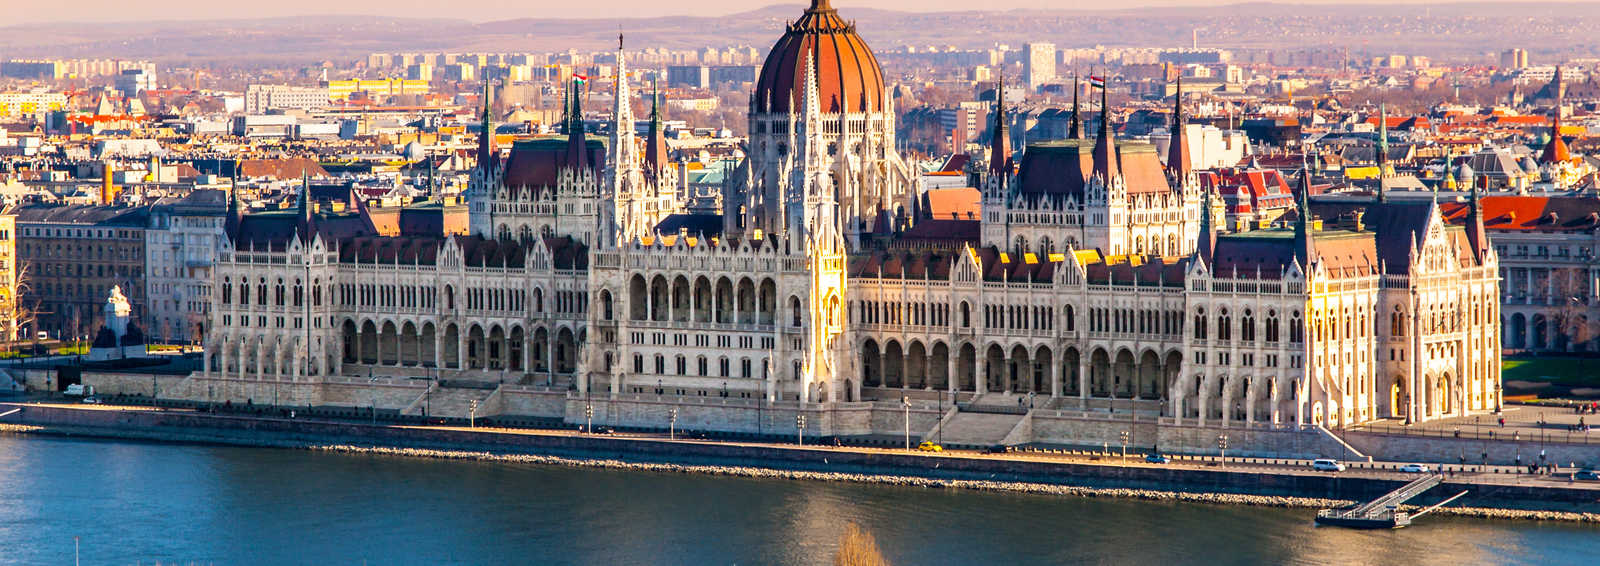 The Hungarian Parliament on the banks of the Danube